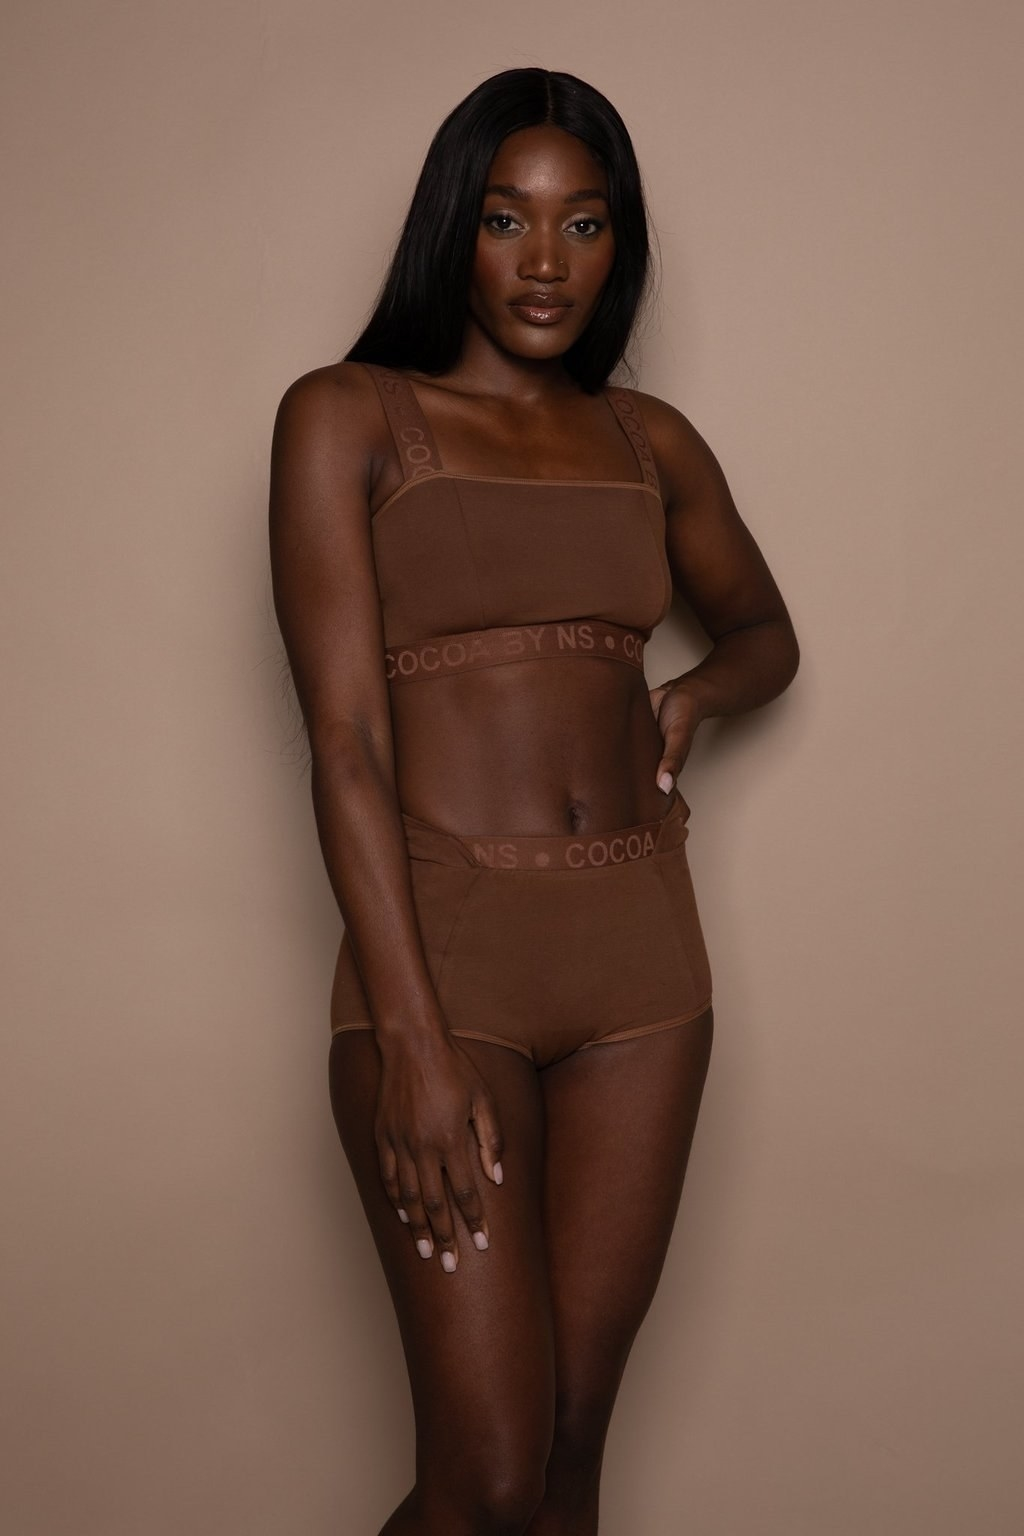 A model in a bralette and boyshorts that match their skin tone